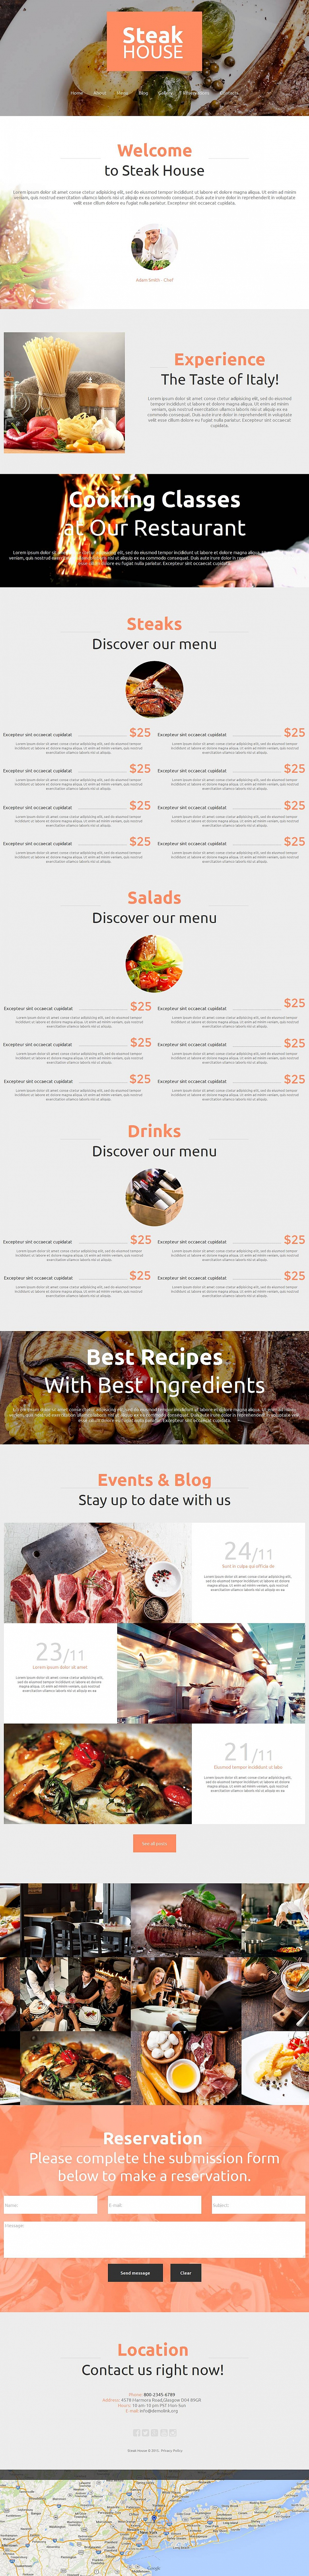 Website Building Theme for Your Steak House - image